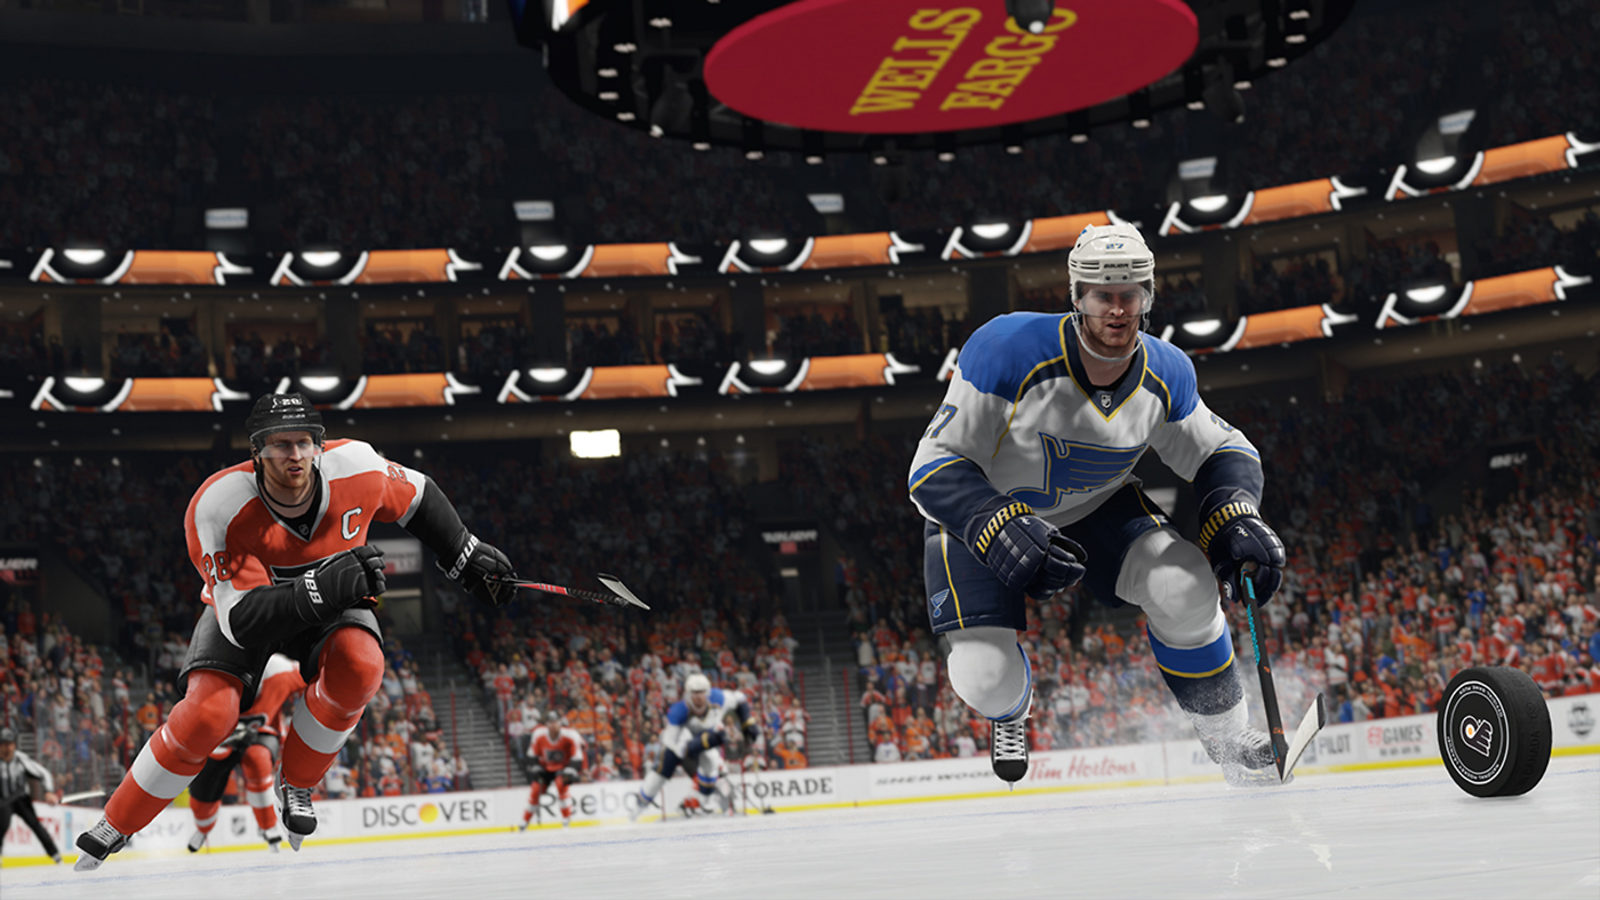 Image: EA SPORTS NHL